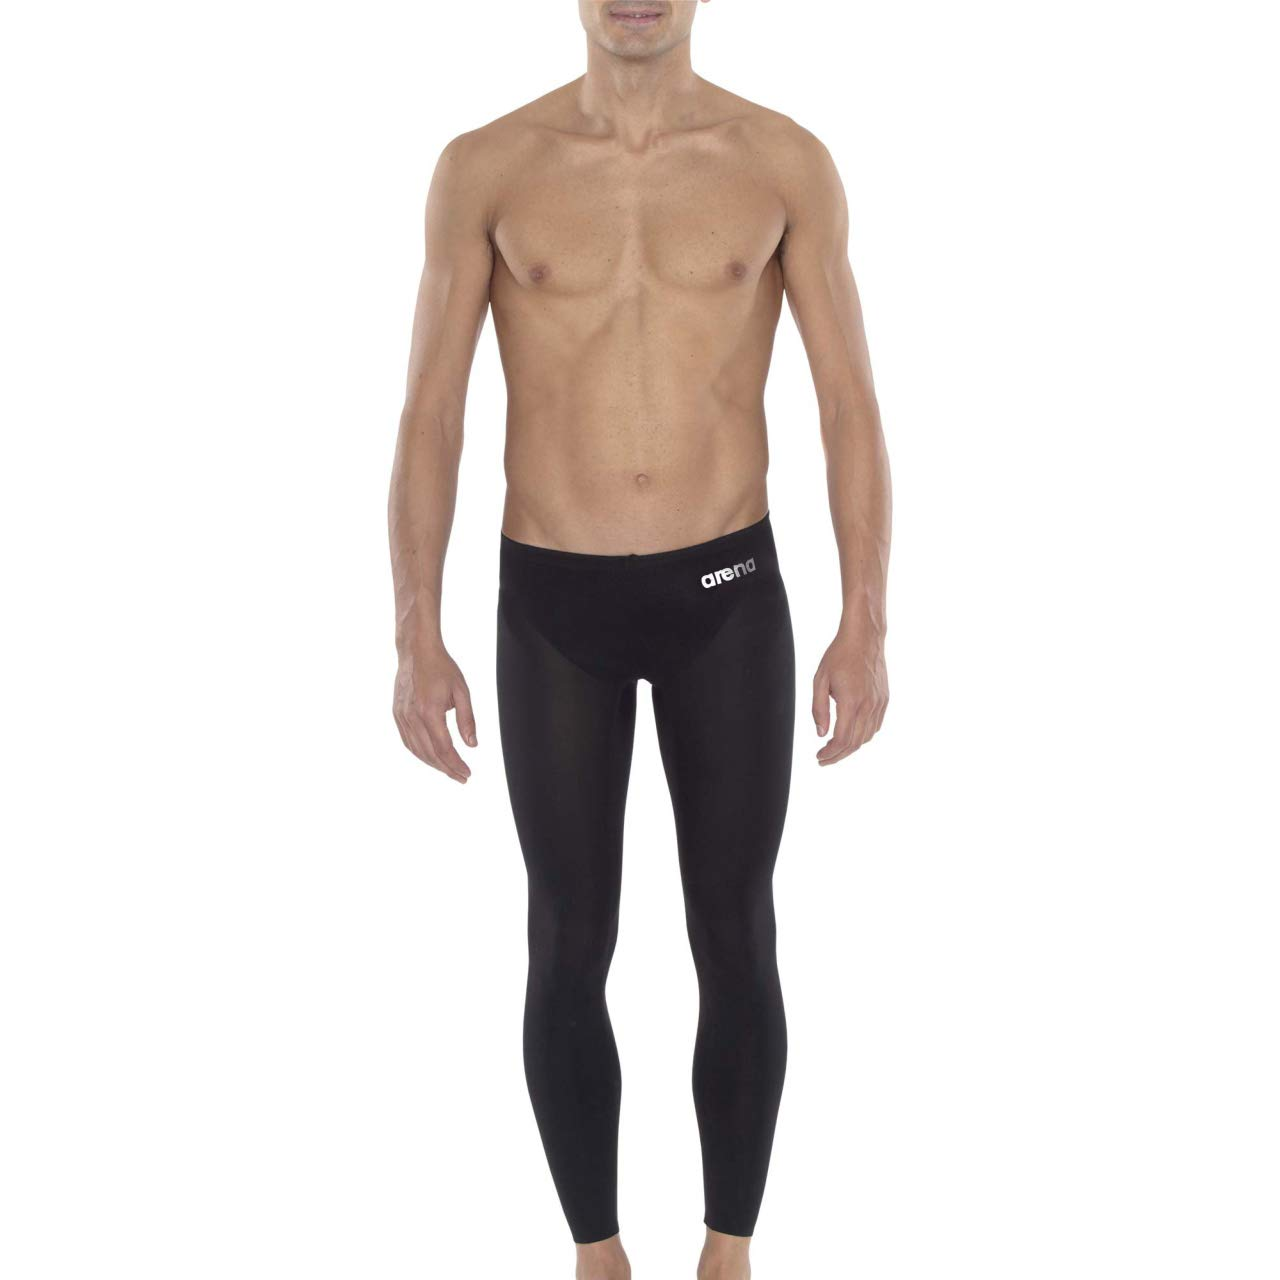 Arena Powerskin R-Evo SL Open Water Pant, Black, 34 by Arena (Image #2)